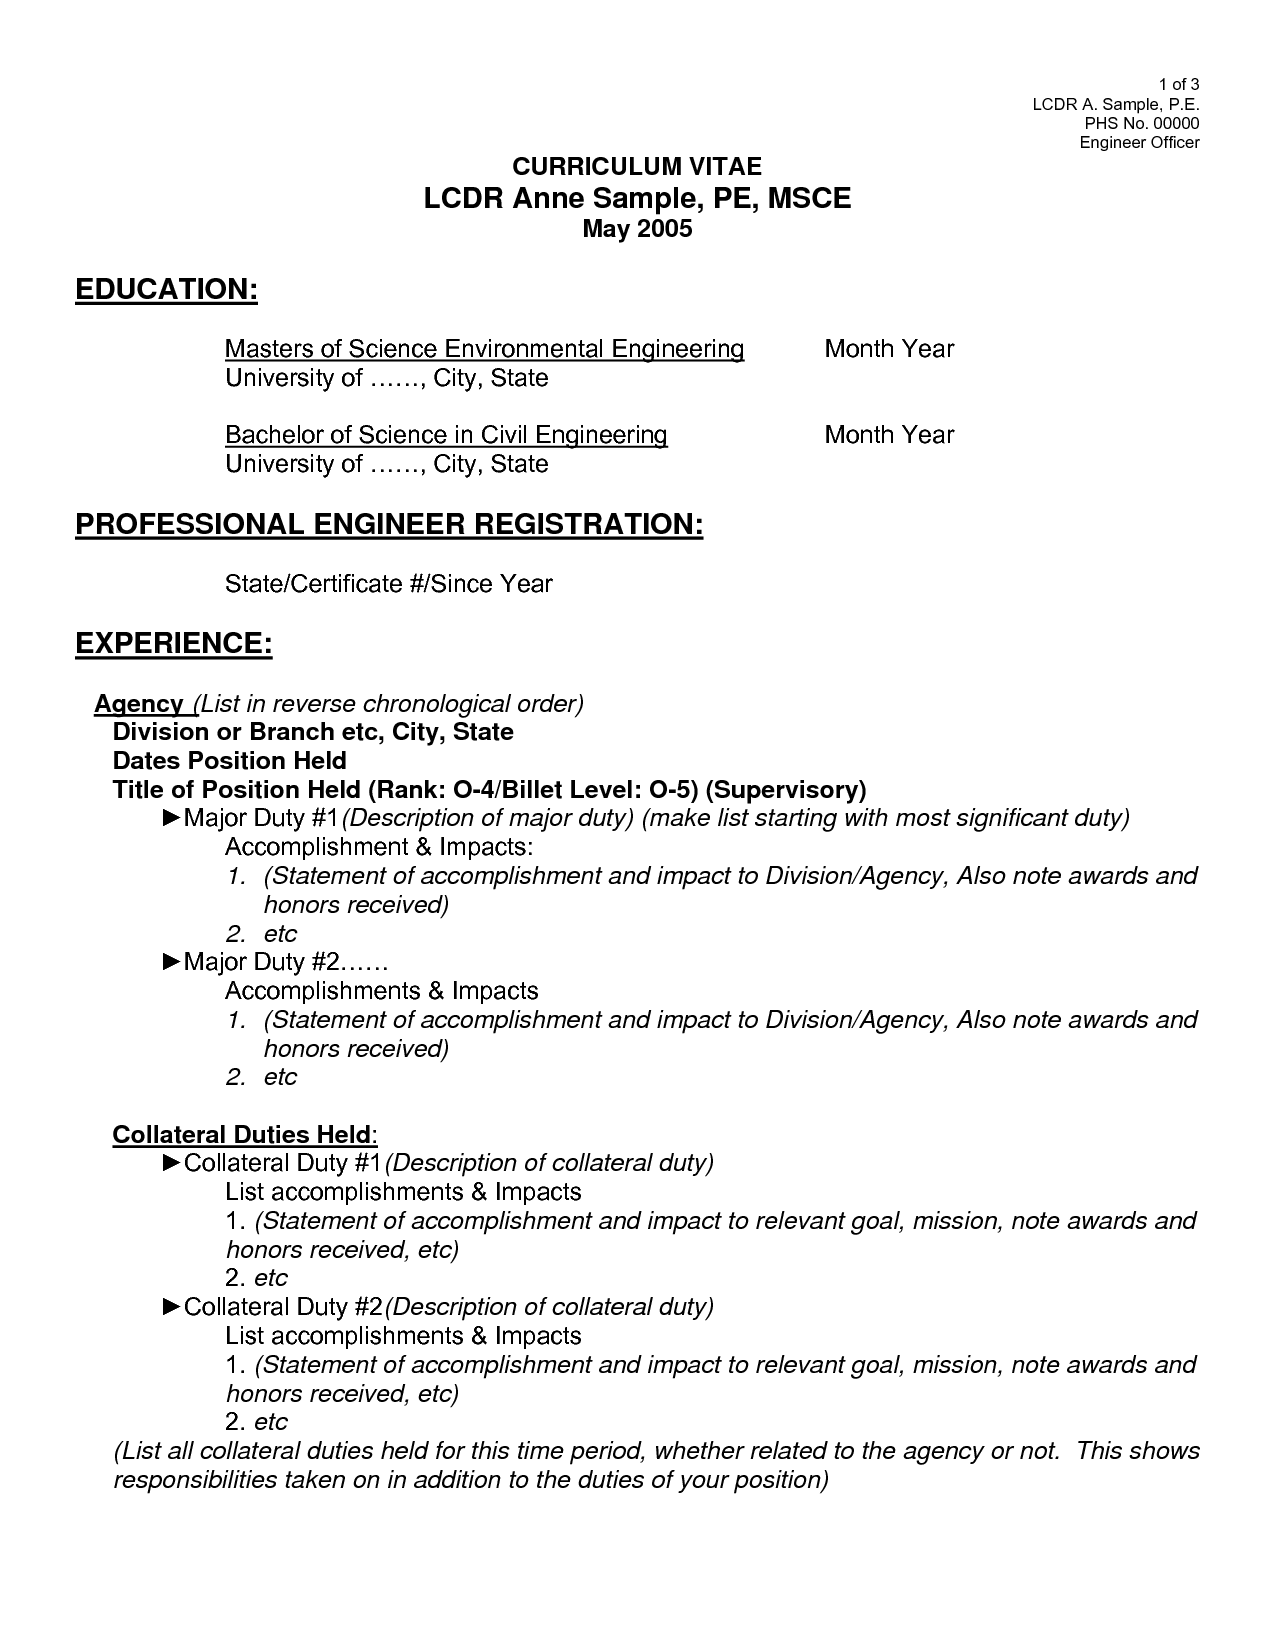 Structural Engineer Resume For Volunteer  Club Ideas  Pinterest  Resume Builder